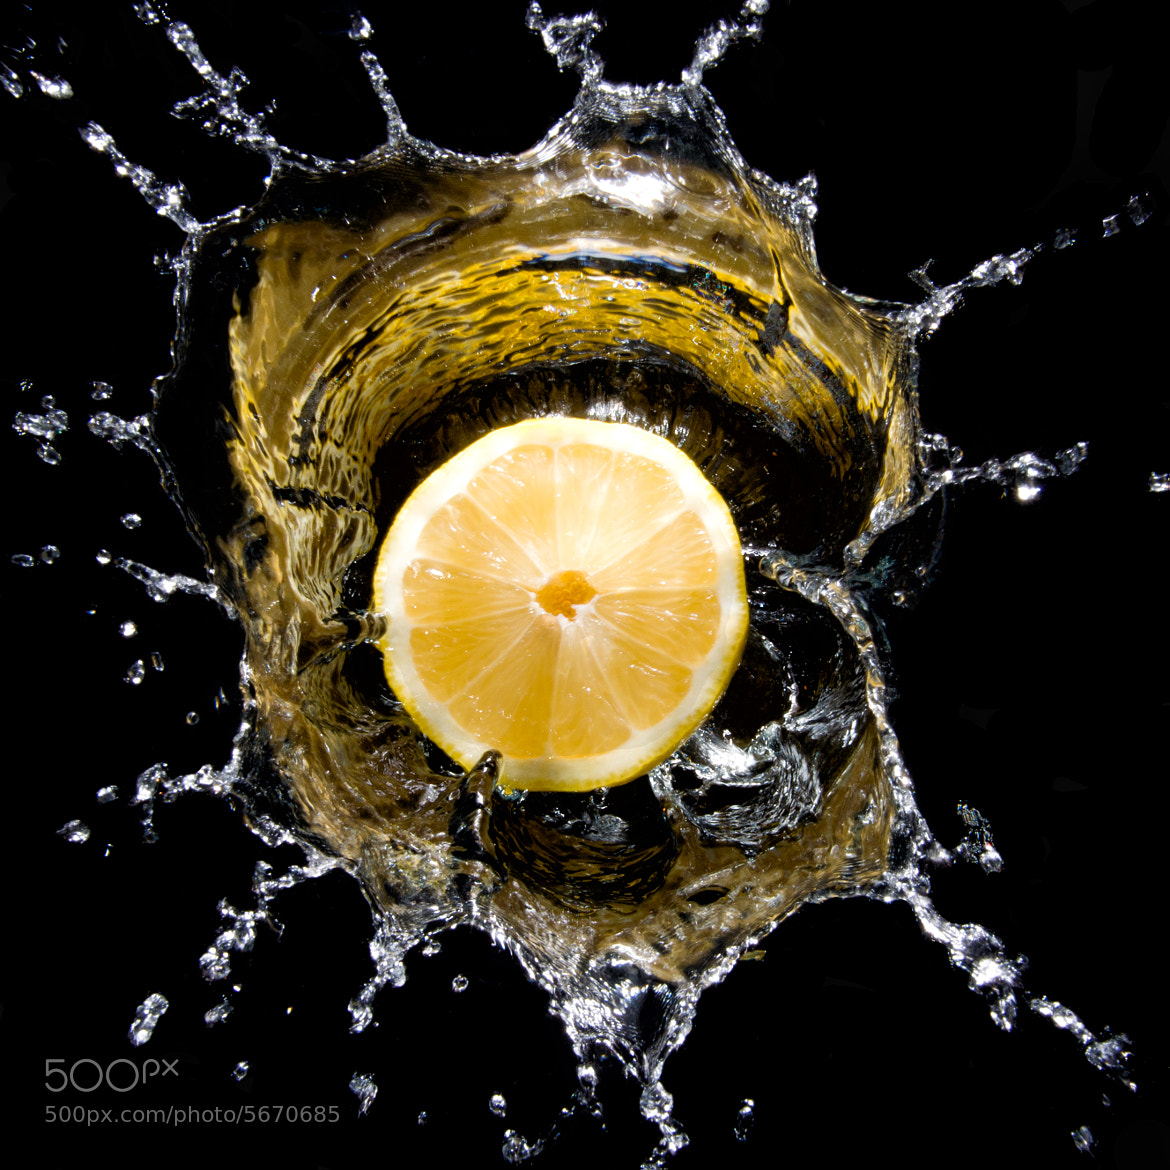 Photograph Lemon splash from top by Martin Cauchon on 500px